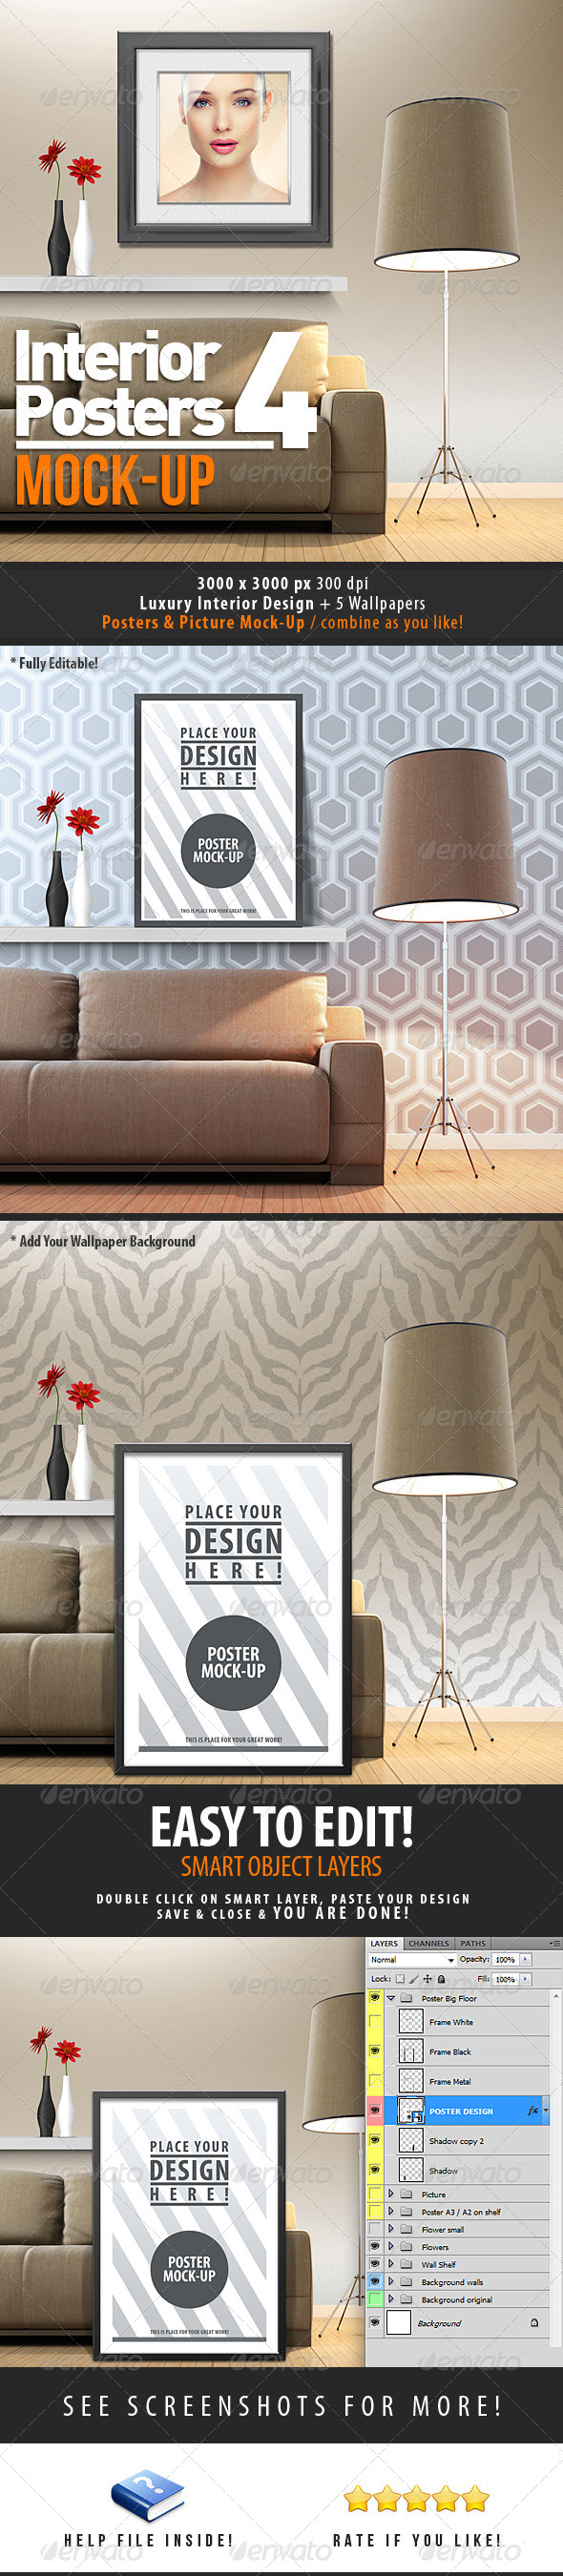 Interior Posters Mock-Up Vol. 4 - Miscellaneous Product Mock-Ups